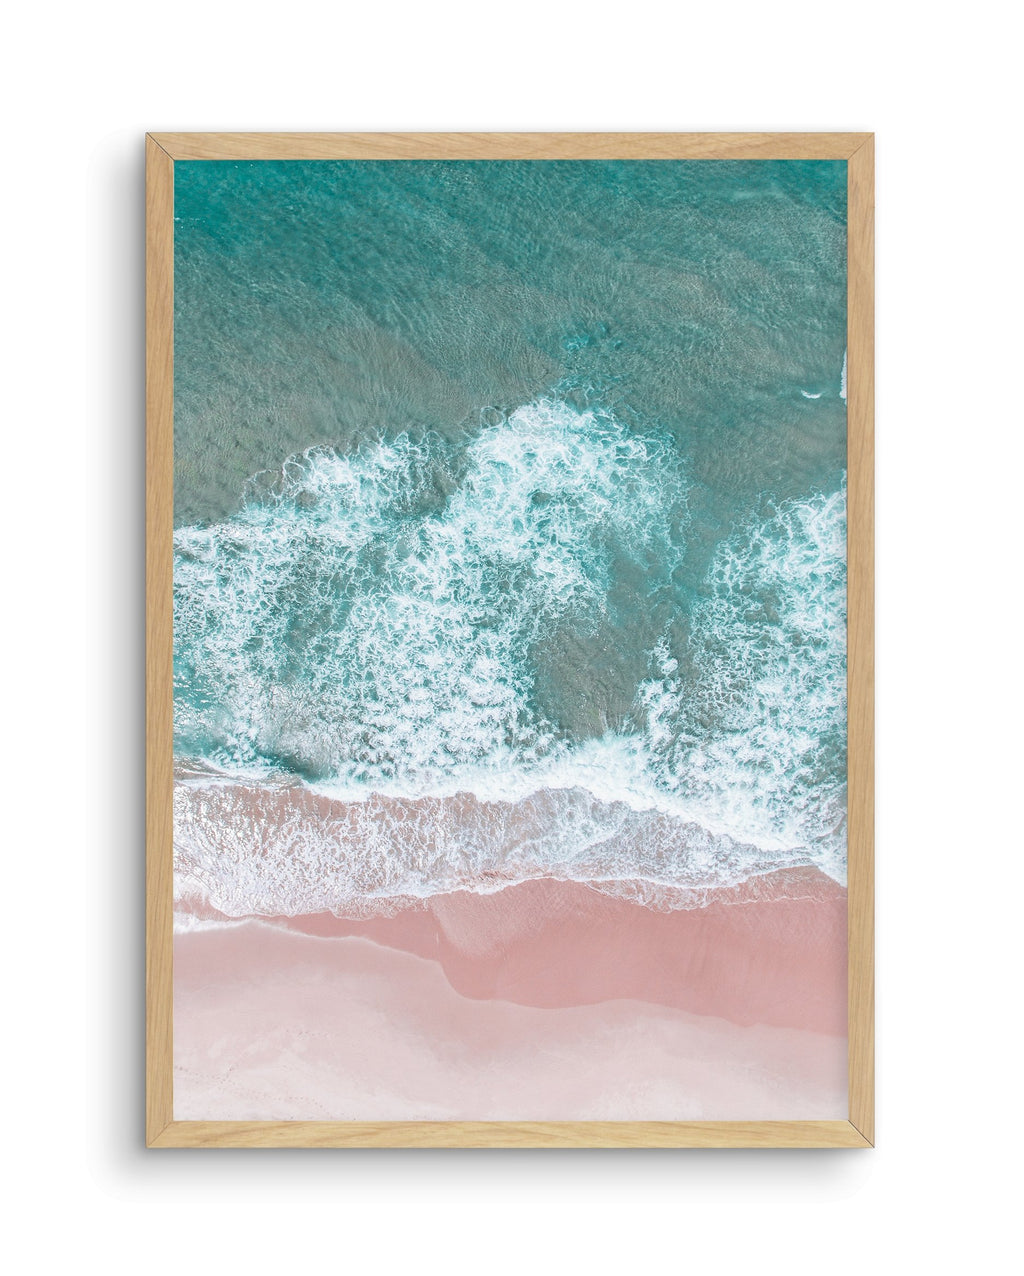 Beach Days - Olive et Oriel | Shop Art Prints & Posters Online